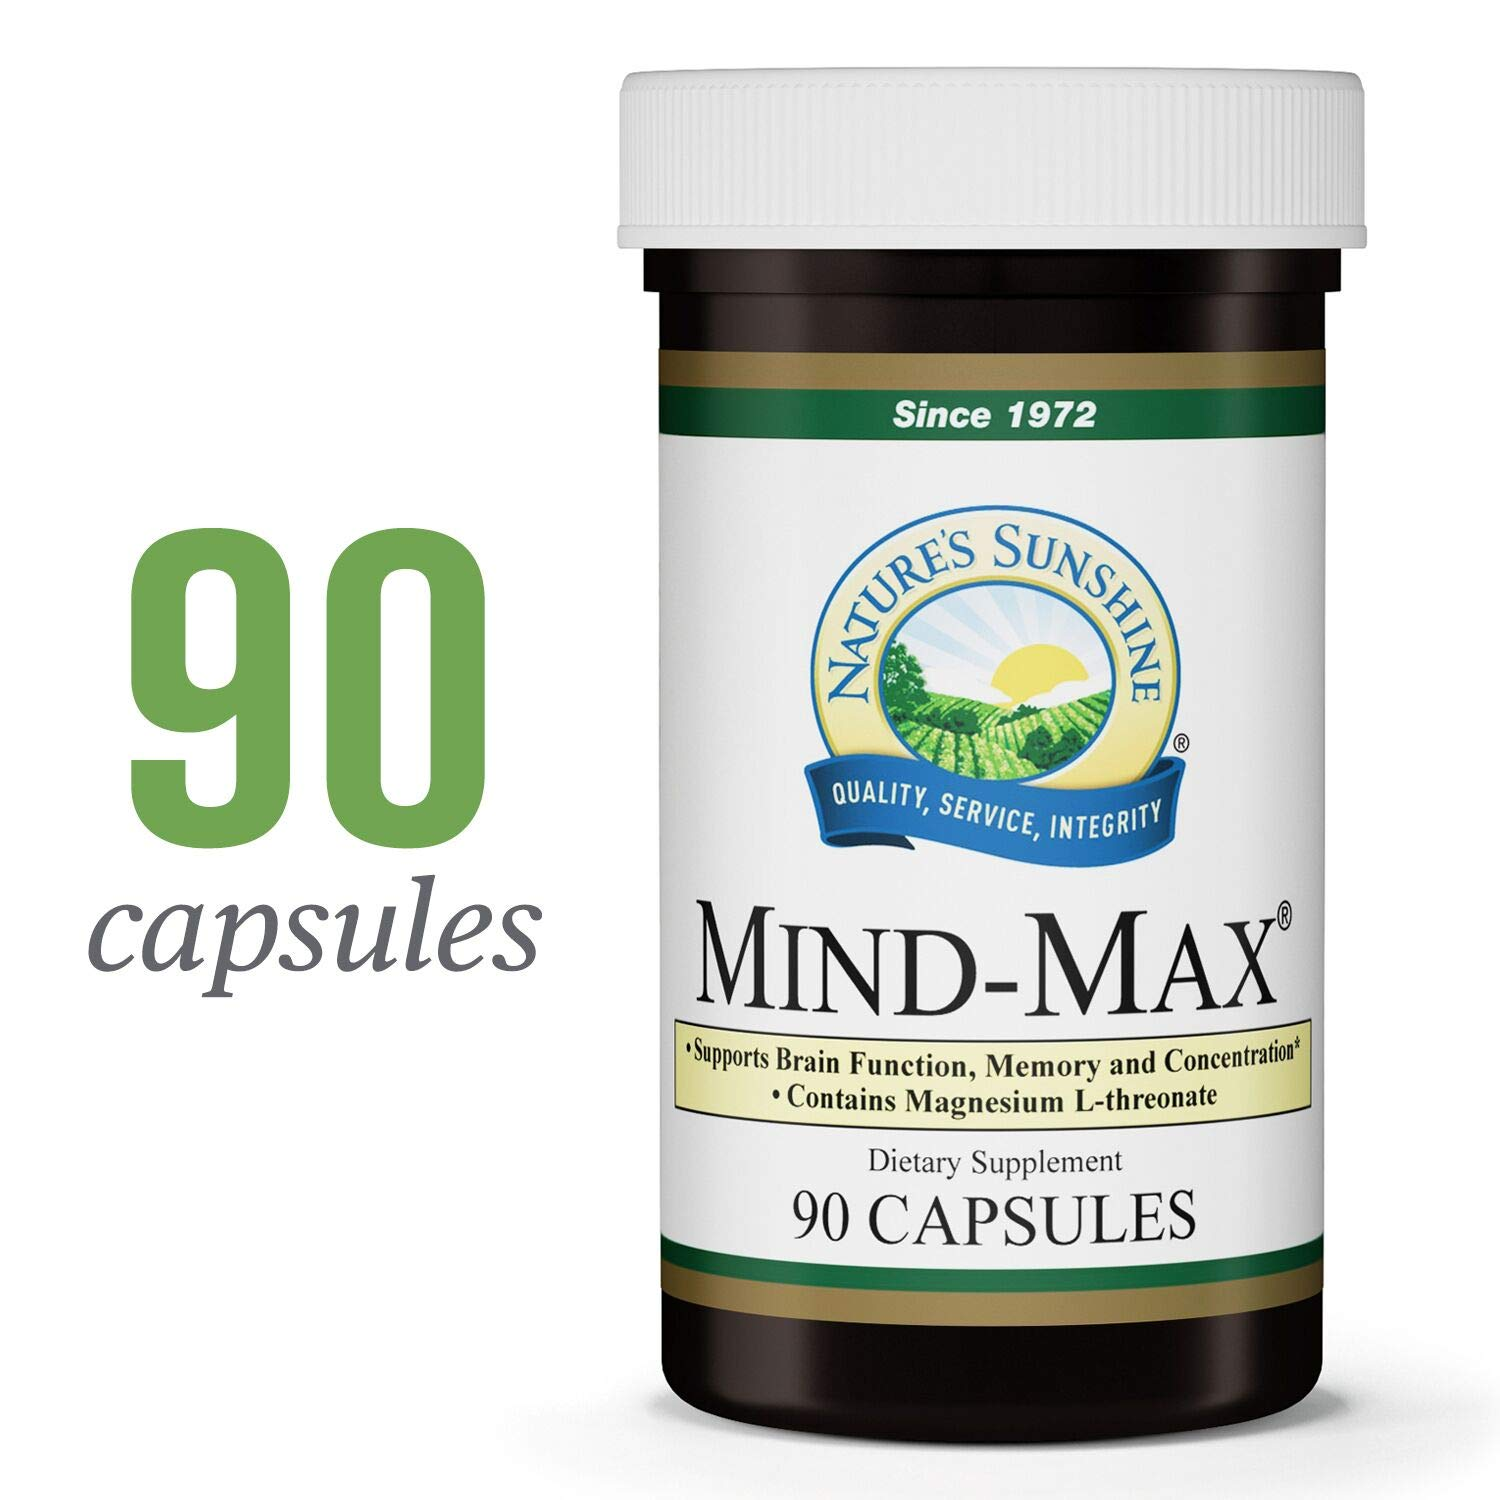 Nature s Sunshine Mind-Max, 90 Capsules Focus Supplement with Magnesium L-Threonate Supports Brain Function and Naturally Encourages Greater Focus, Energy, Memory, and Clarity